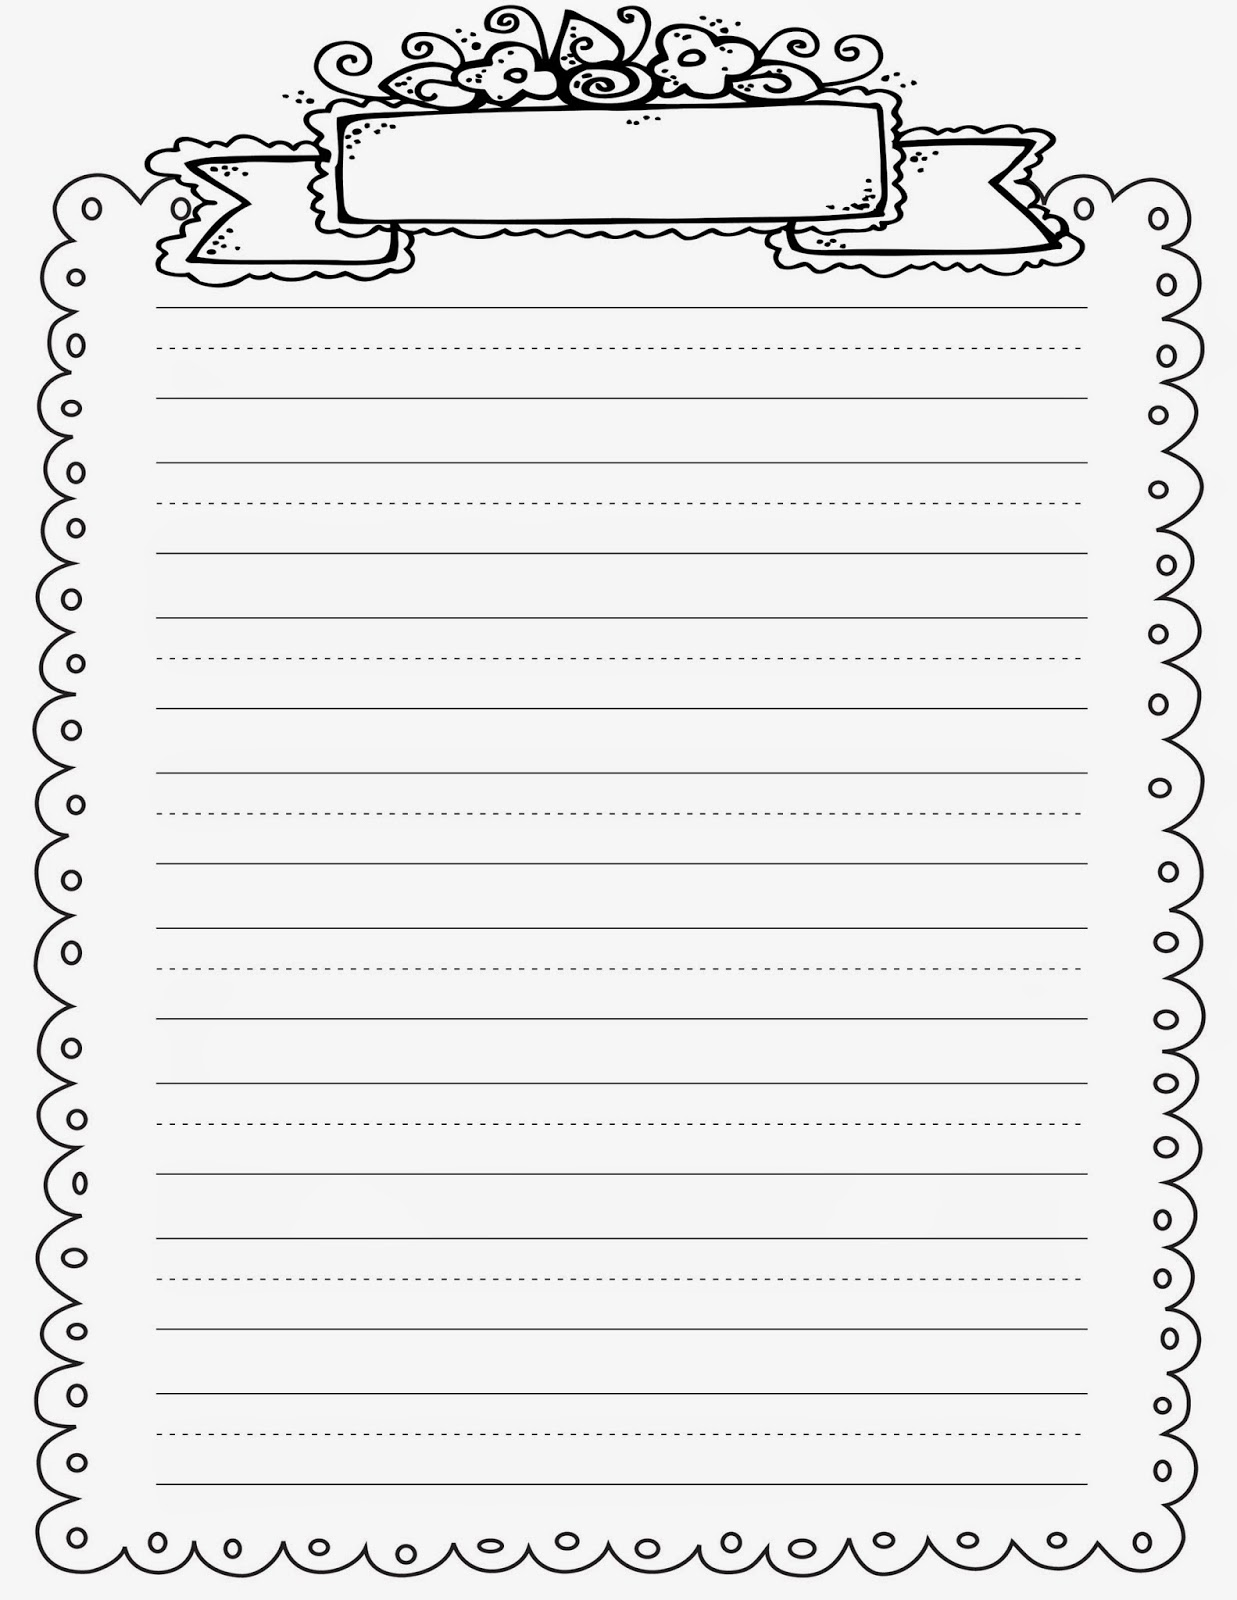 Gallery For gt Lined Paper With Black And White Border